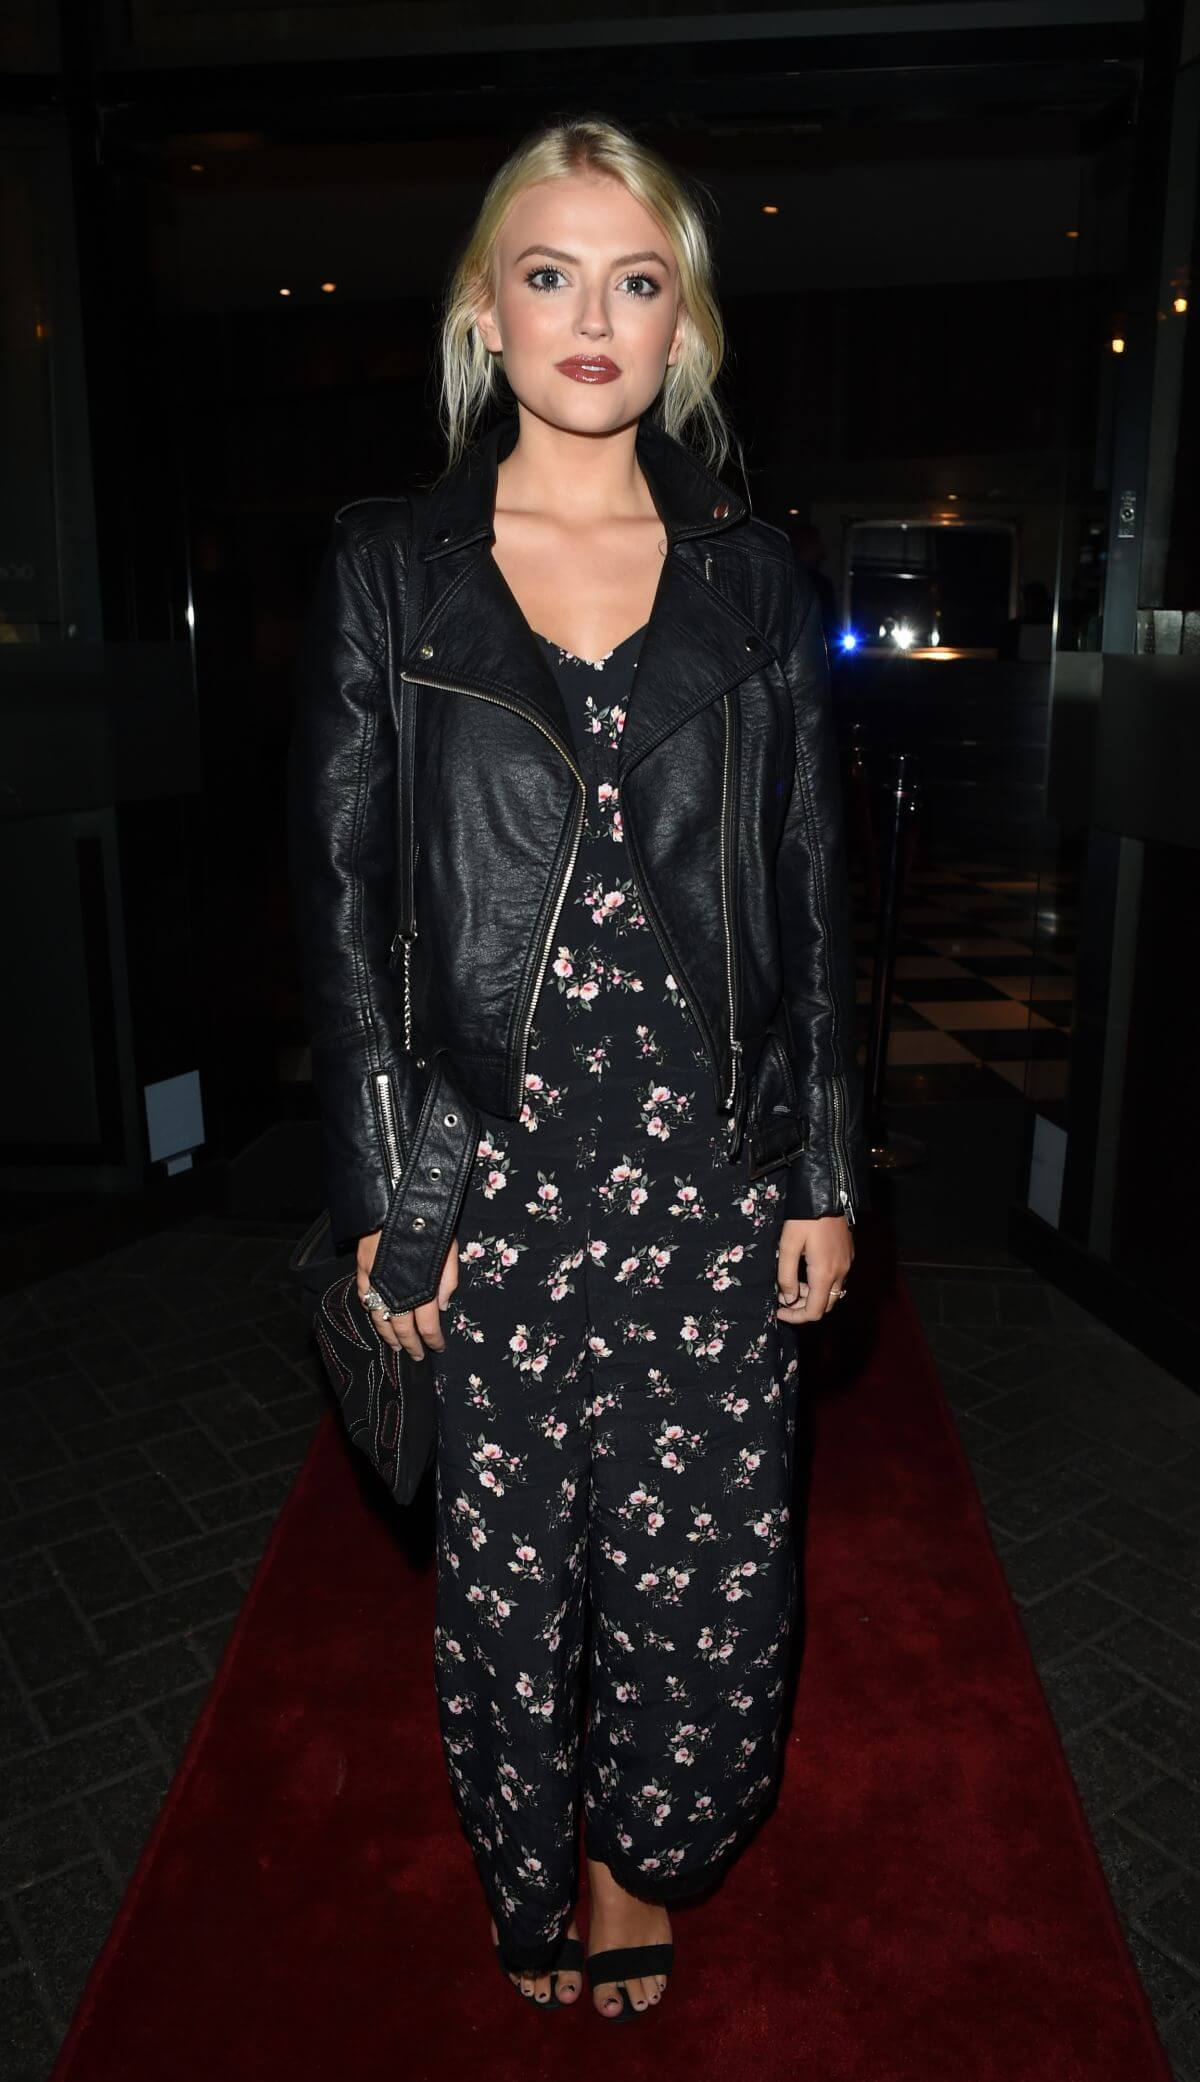 Actress Lucy Fallon at Mal Maison Events Rooms Launch Party in Manchester